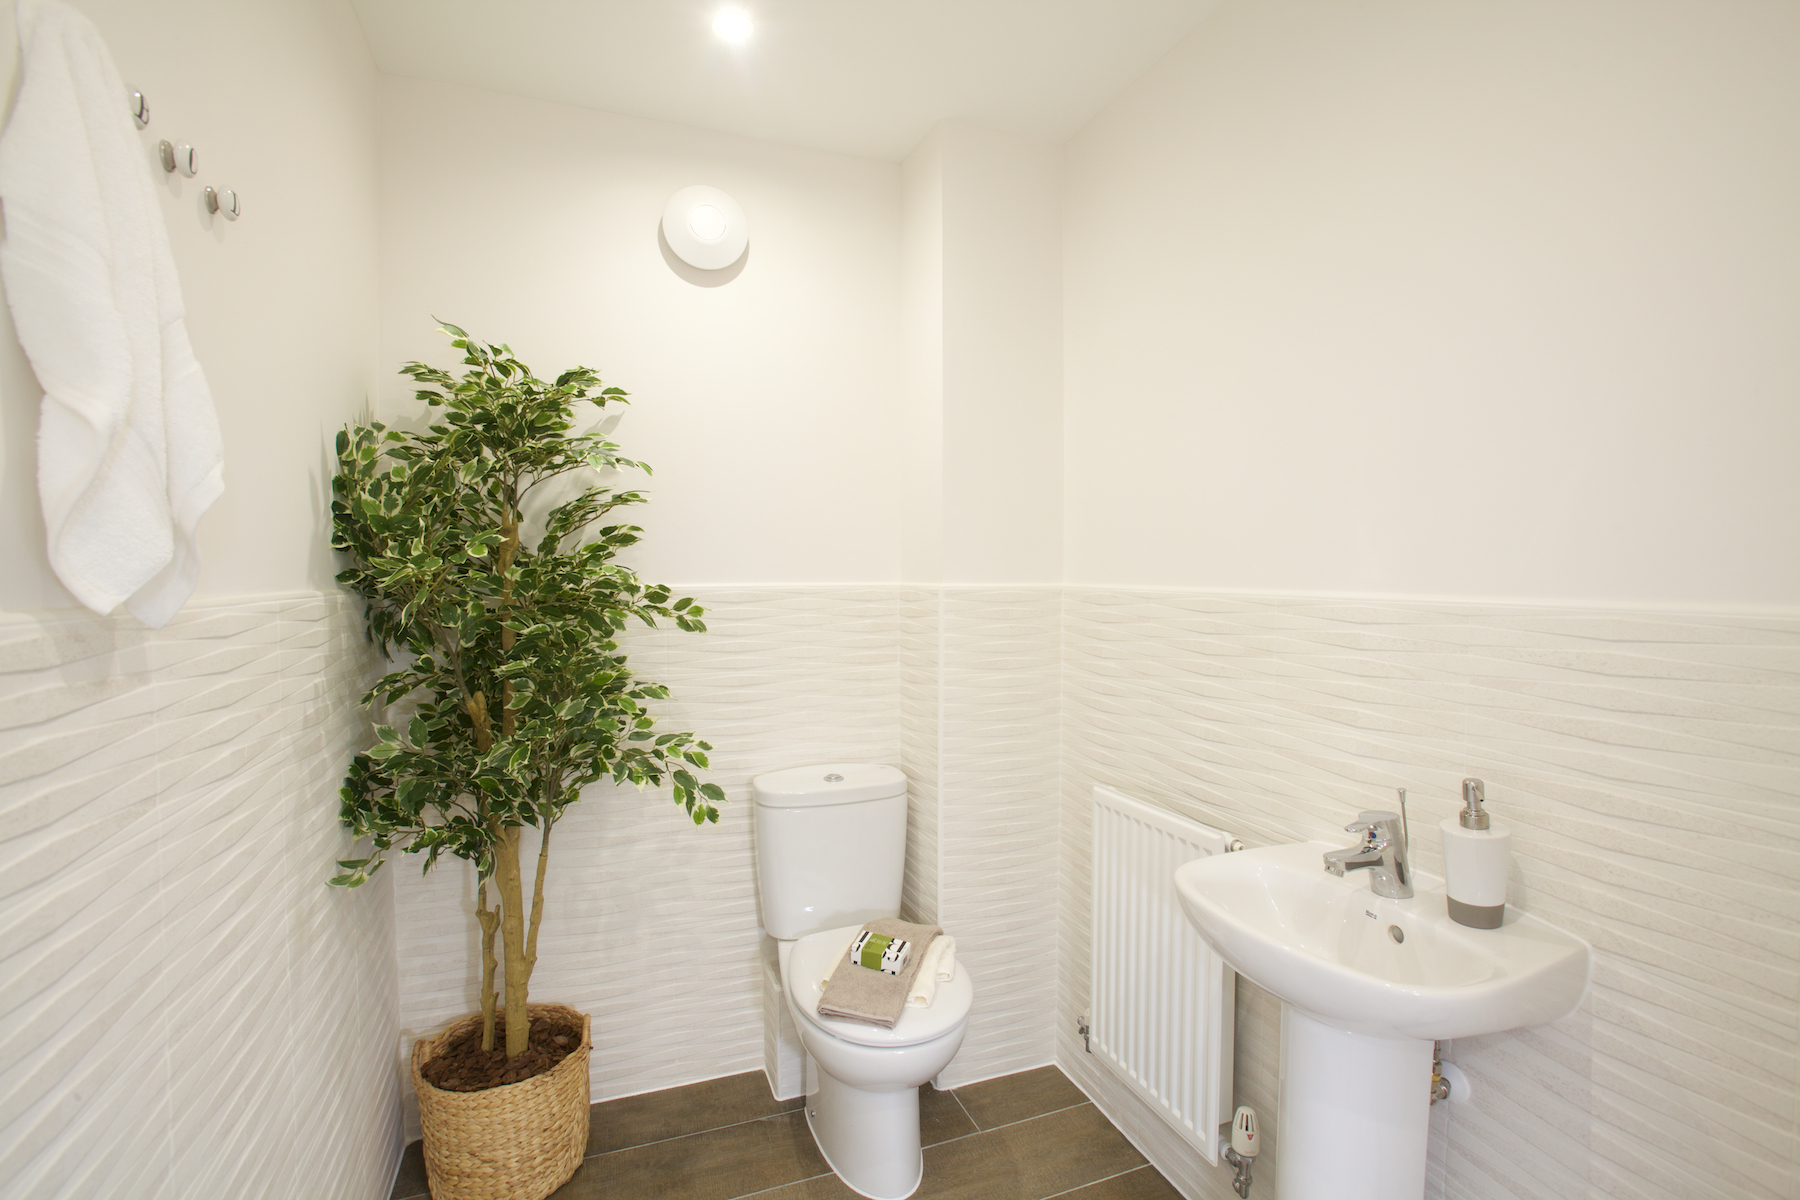 Typical Taylor Wimpey home - Cloakroom